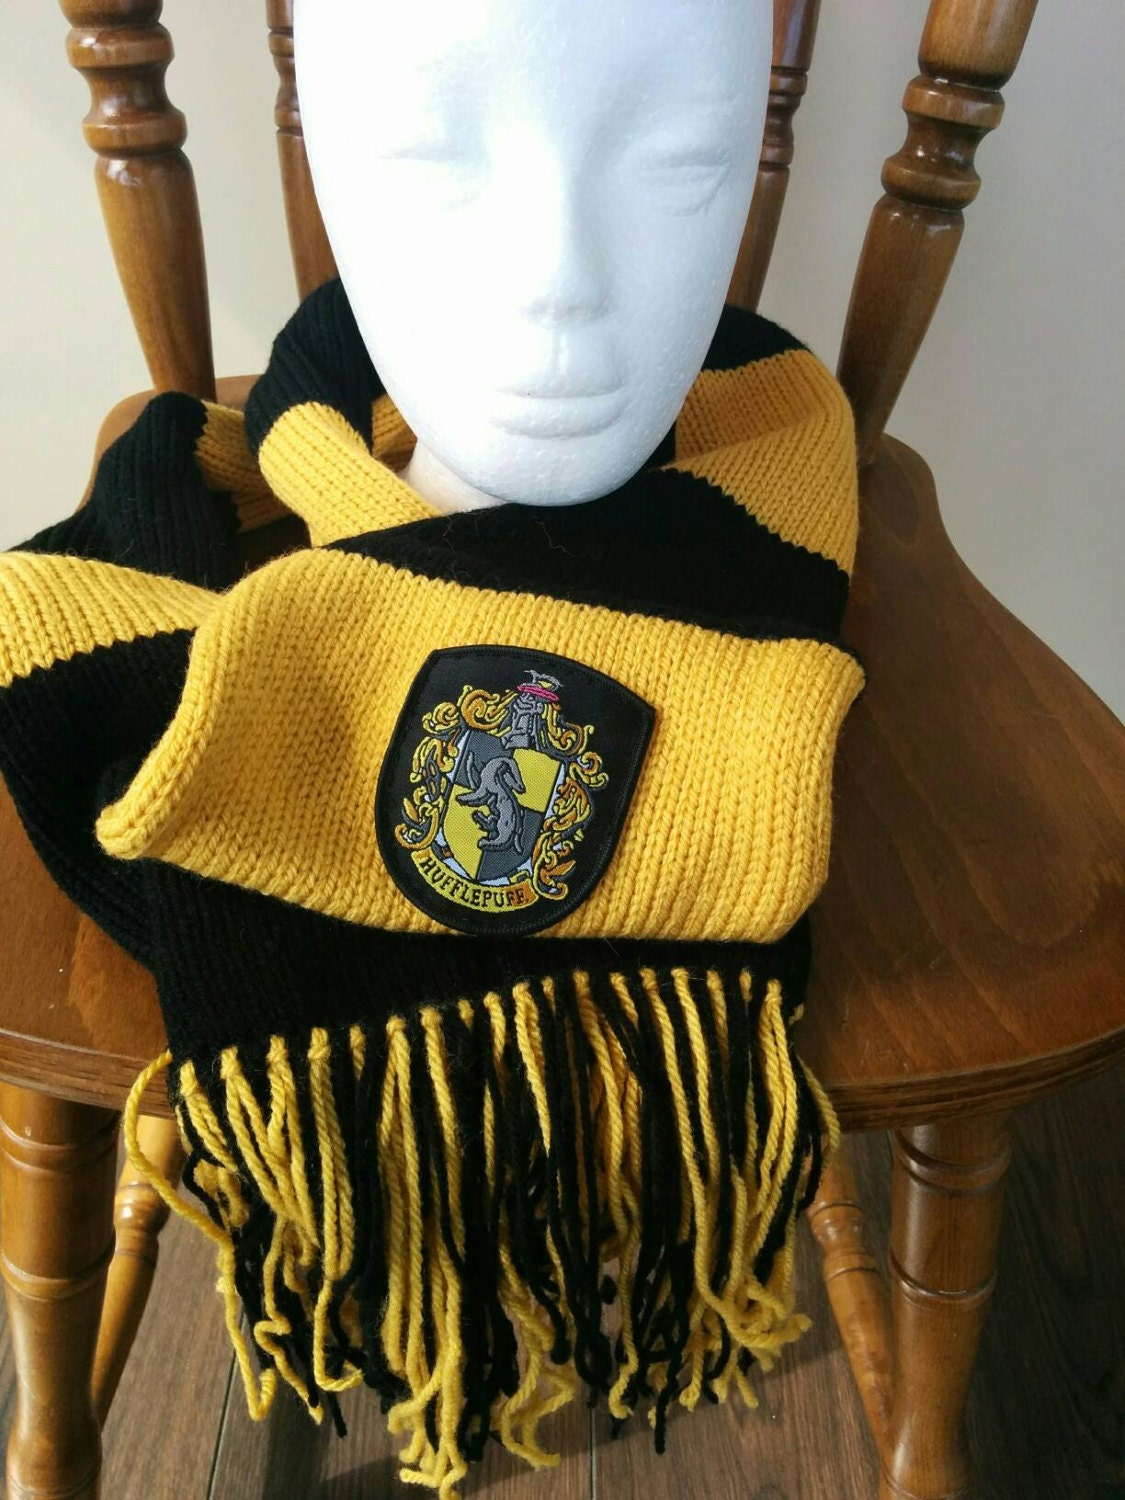 Hufflepuff Scarf Knitting Pattern : Harry potter hufflepuff scarf with tassles & crest by AFcraft